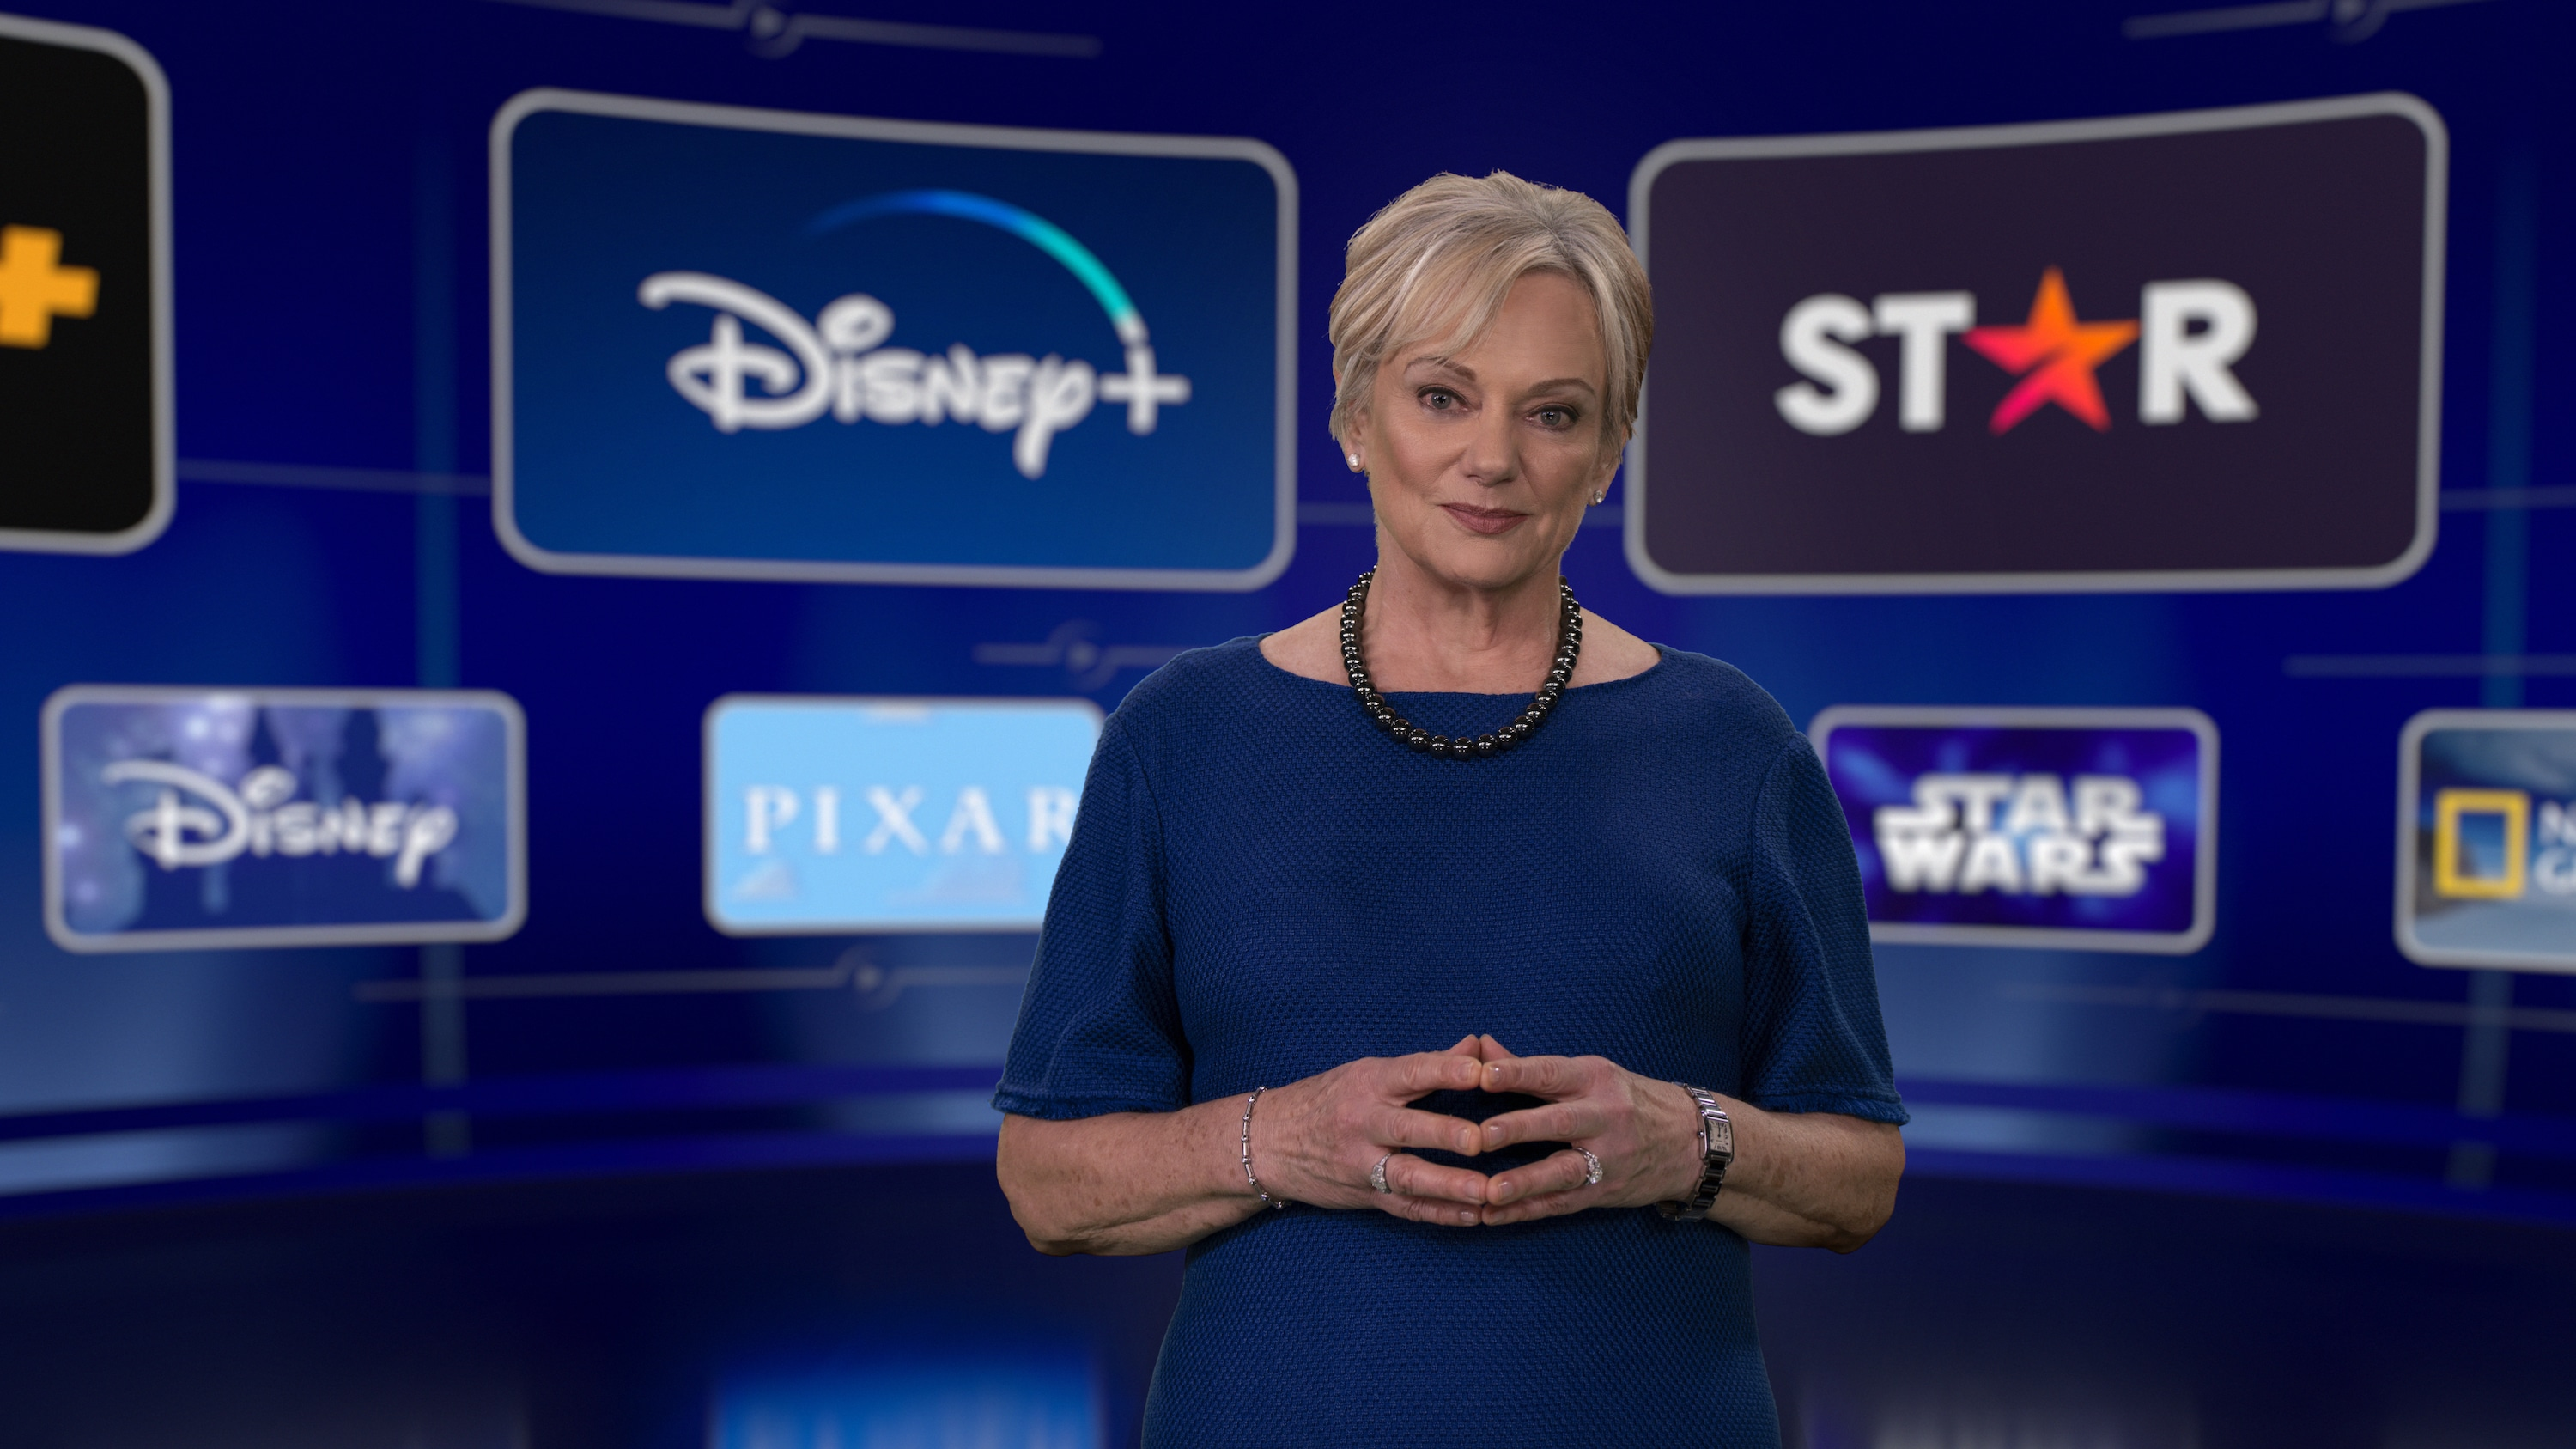 Christine M. McCarthy, Senior Executive Vice President and Chief Financial Officer, The Walt Disney Company at The Walt Disney Company's Investor Day 2020.